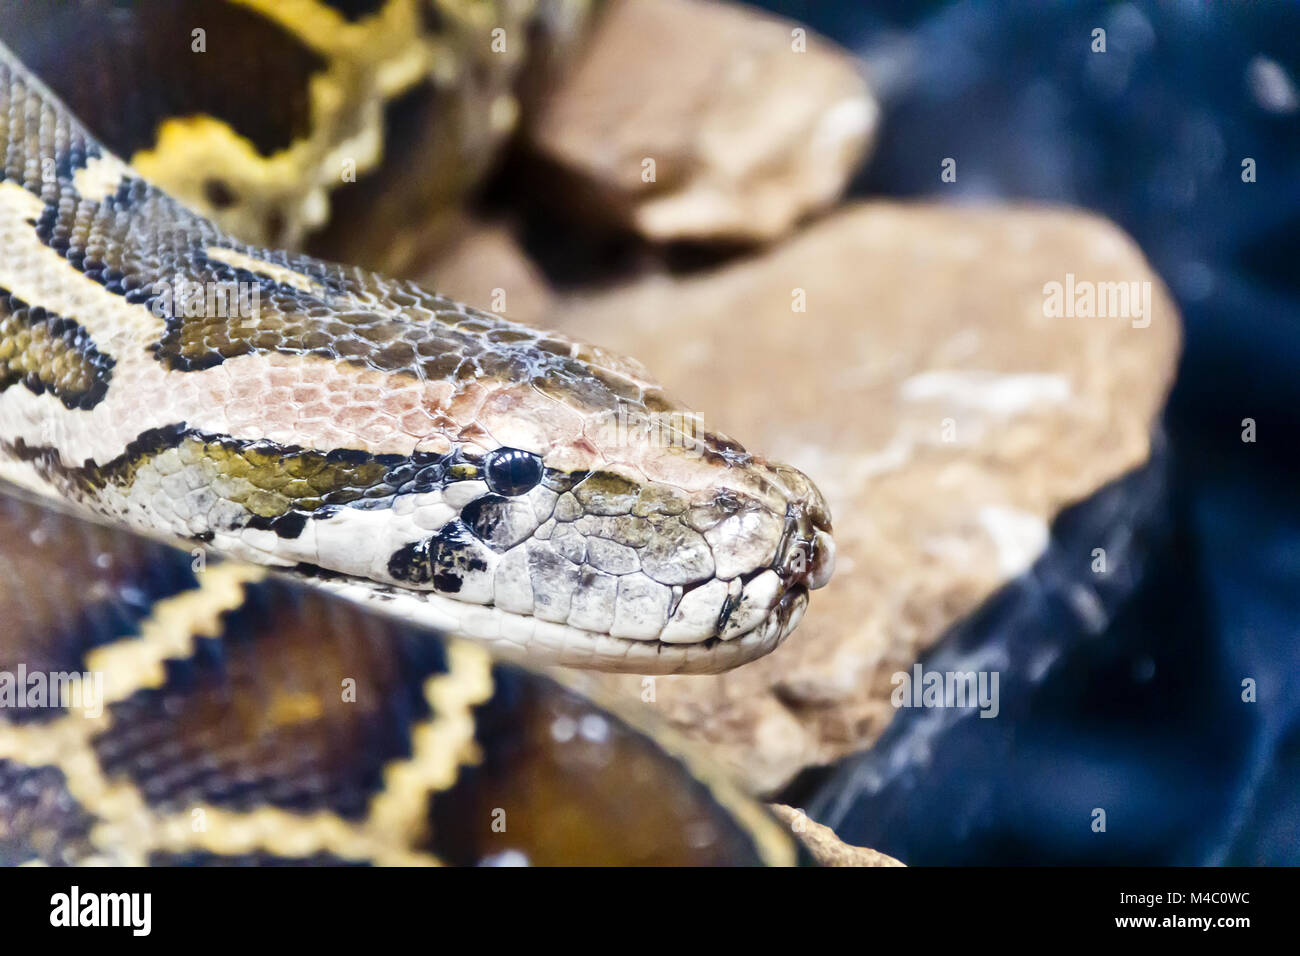 Python head in the midst of stones - Stock Image